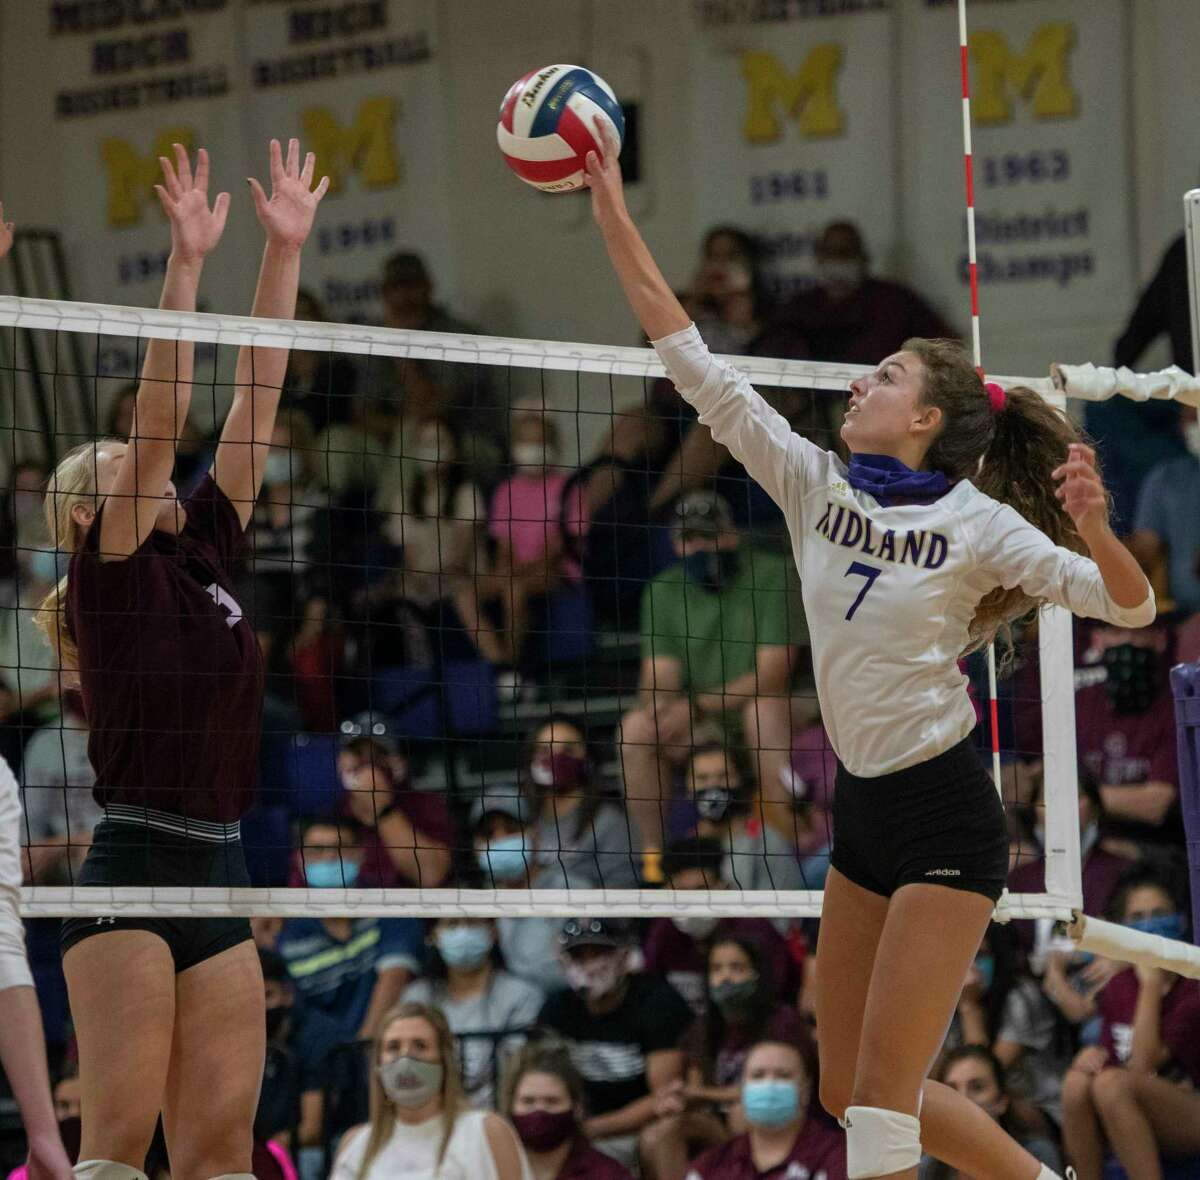 Midland High's Olivia Hale (7) hits the ball at Lee's Paige Prather on Friday, Oct. 2, 2020 at Midland High School. Jacy Lewis/Reporter-Telegram